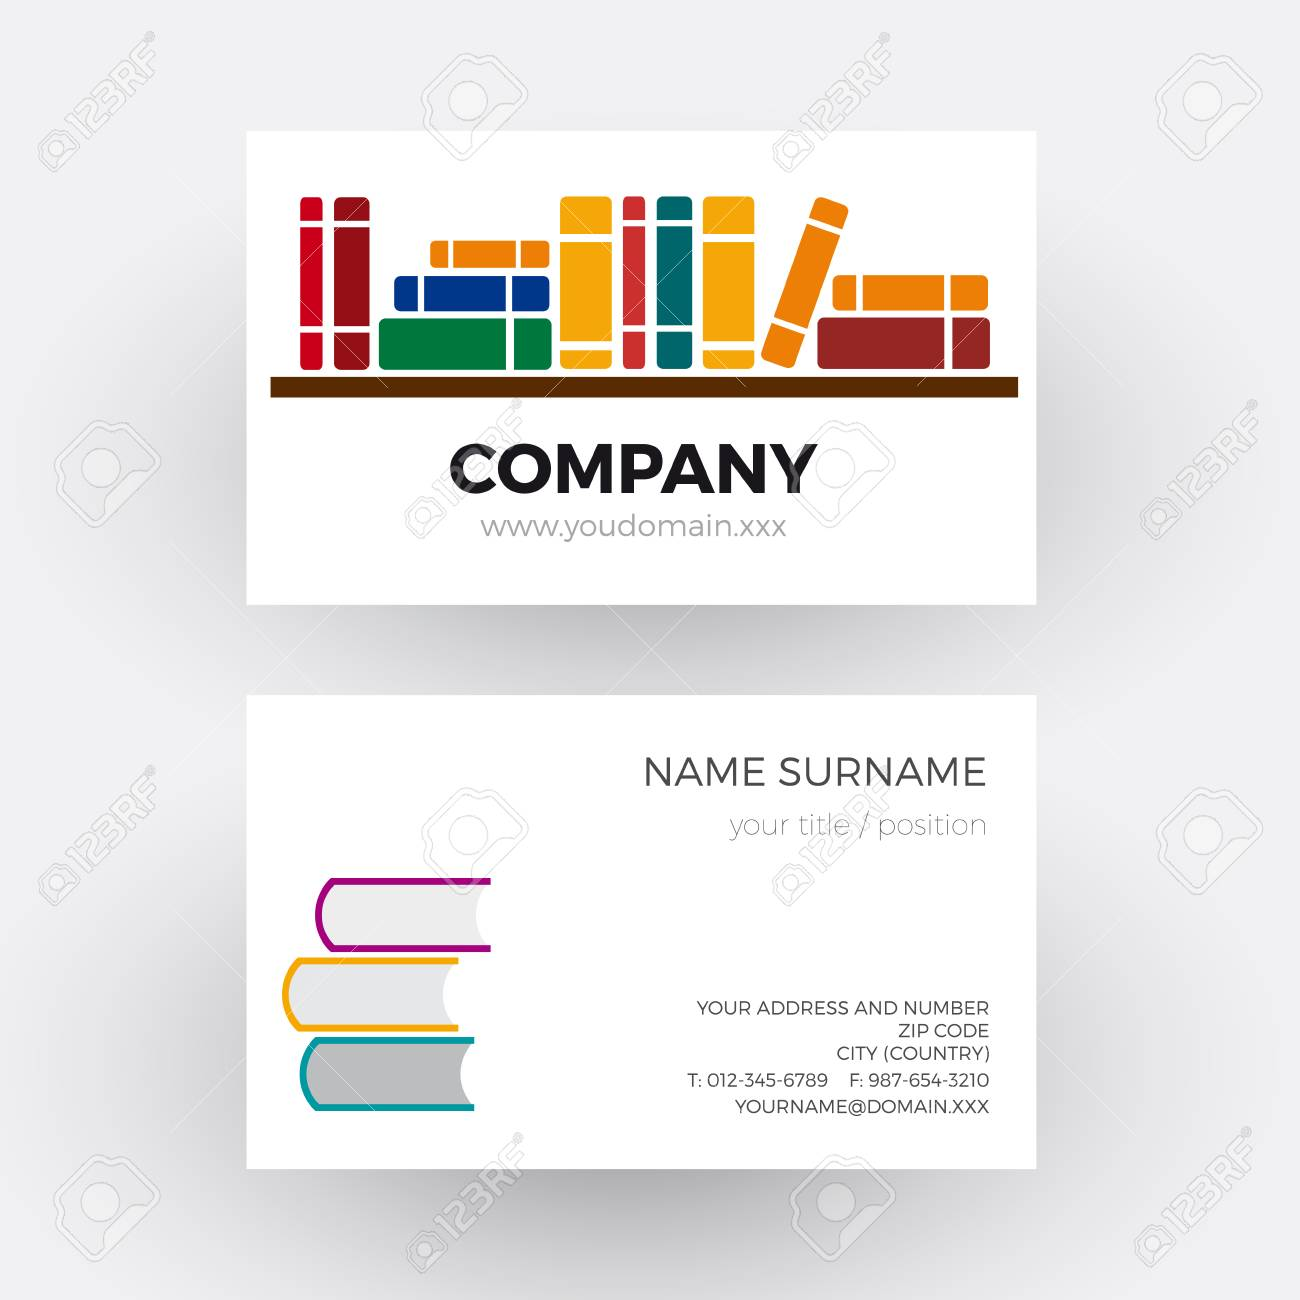 Bookseller business cards image collections card design and card bookseller business cards image collections card design and card bookseller business cards choice image card design reheart Gallery